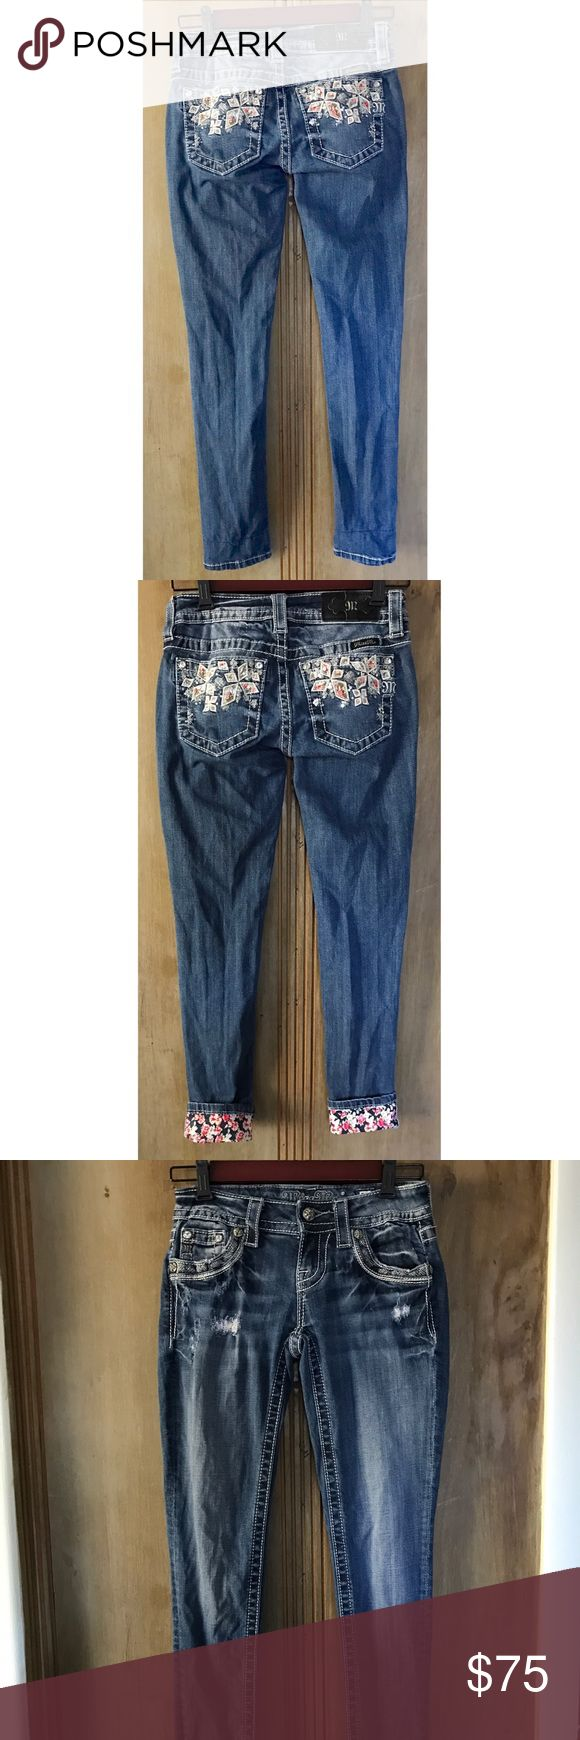 """Miss Me Signature Cuffed Skinny Jeans Miss Me signature cuffed skinny jeans. Can be worn cuffed with adorable floral pattern showing or worn regularly without the cuff. Back pockets mimic the cuffed floral pattern and are stitched with silver thread and sequins. Front pockets are stitched with a silver border. Some distressing at the front pockets. Inseam is 27"""" when cuffed and 29.5"""" when not. Waist is 24"""". Gently used. Miss Me Jeans Skinny"""